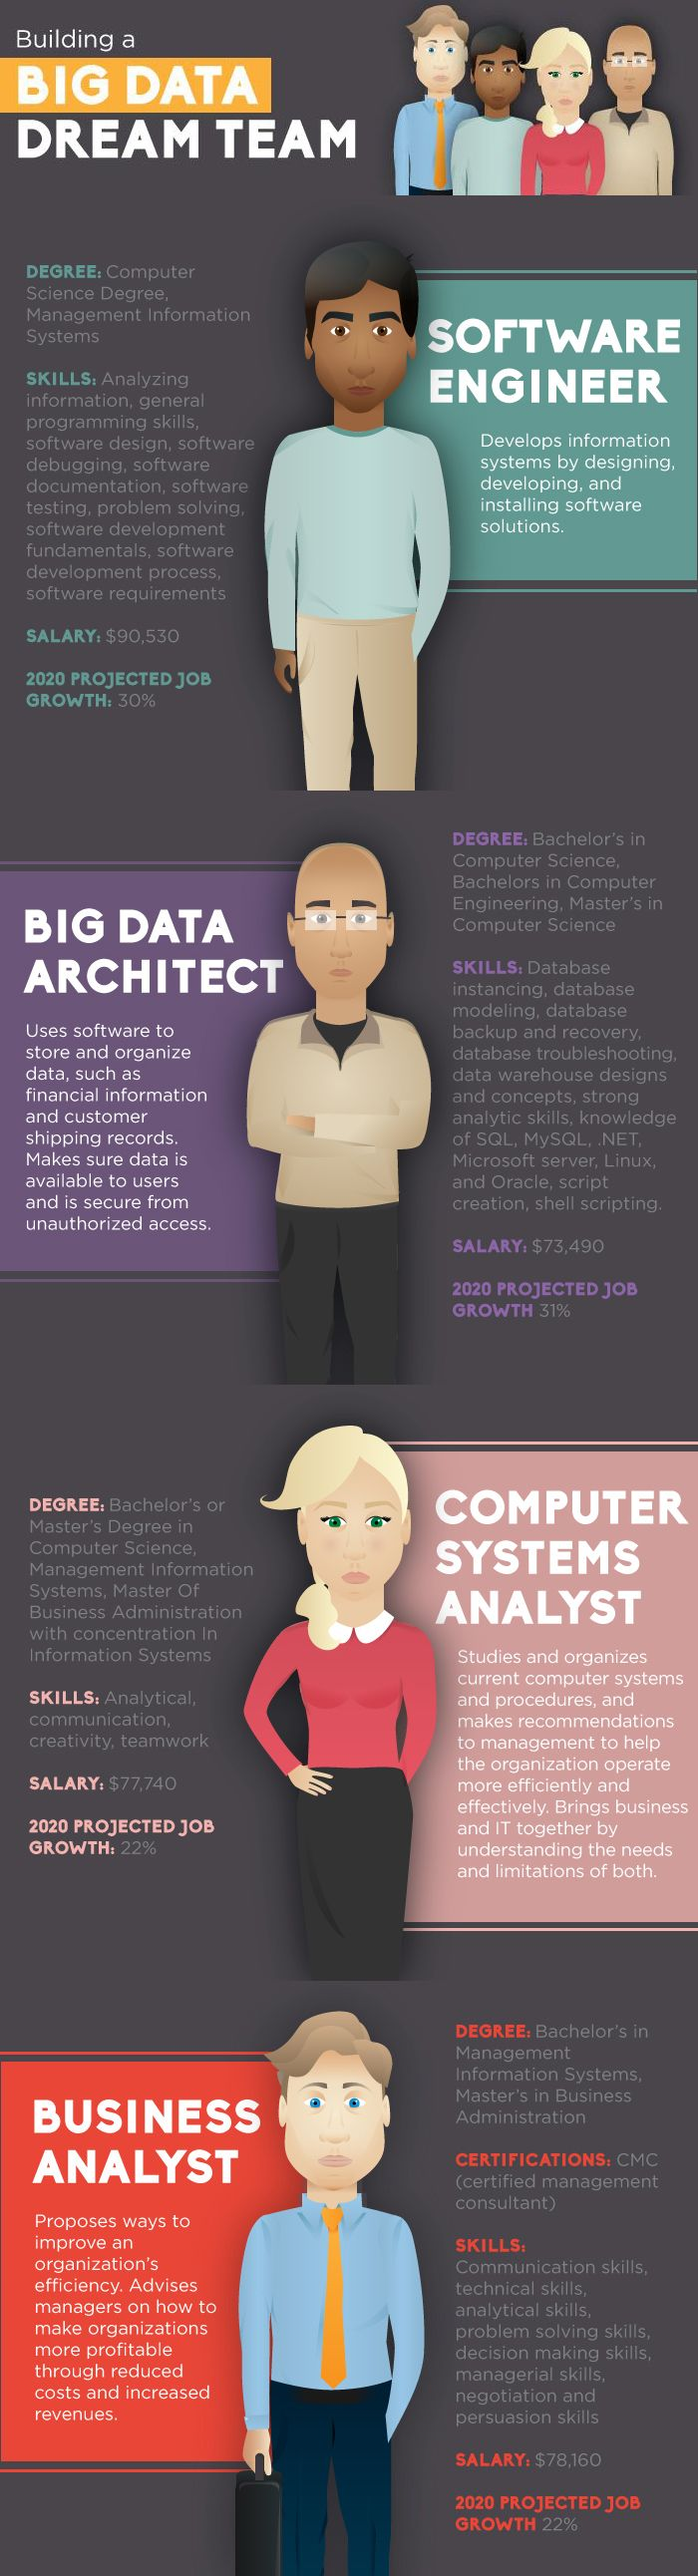 Building a big data dream team? Today's specialists must have technical chops and be savvy enough to convey results. Mix 1 part software engineer, 1 part big data architect, 1 part business analyst and 1 part computer systems analyst: http://techpageone.dell.com/technology/data-center/building-big-data-dream-team/#.UvFEHfnnZph